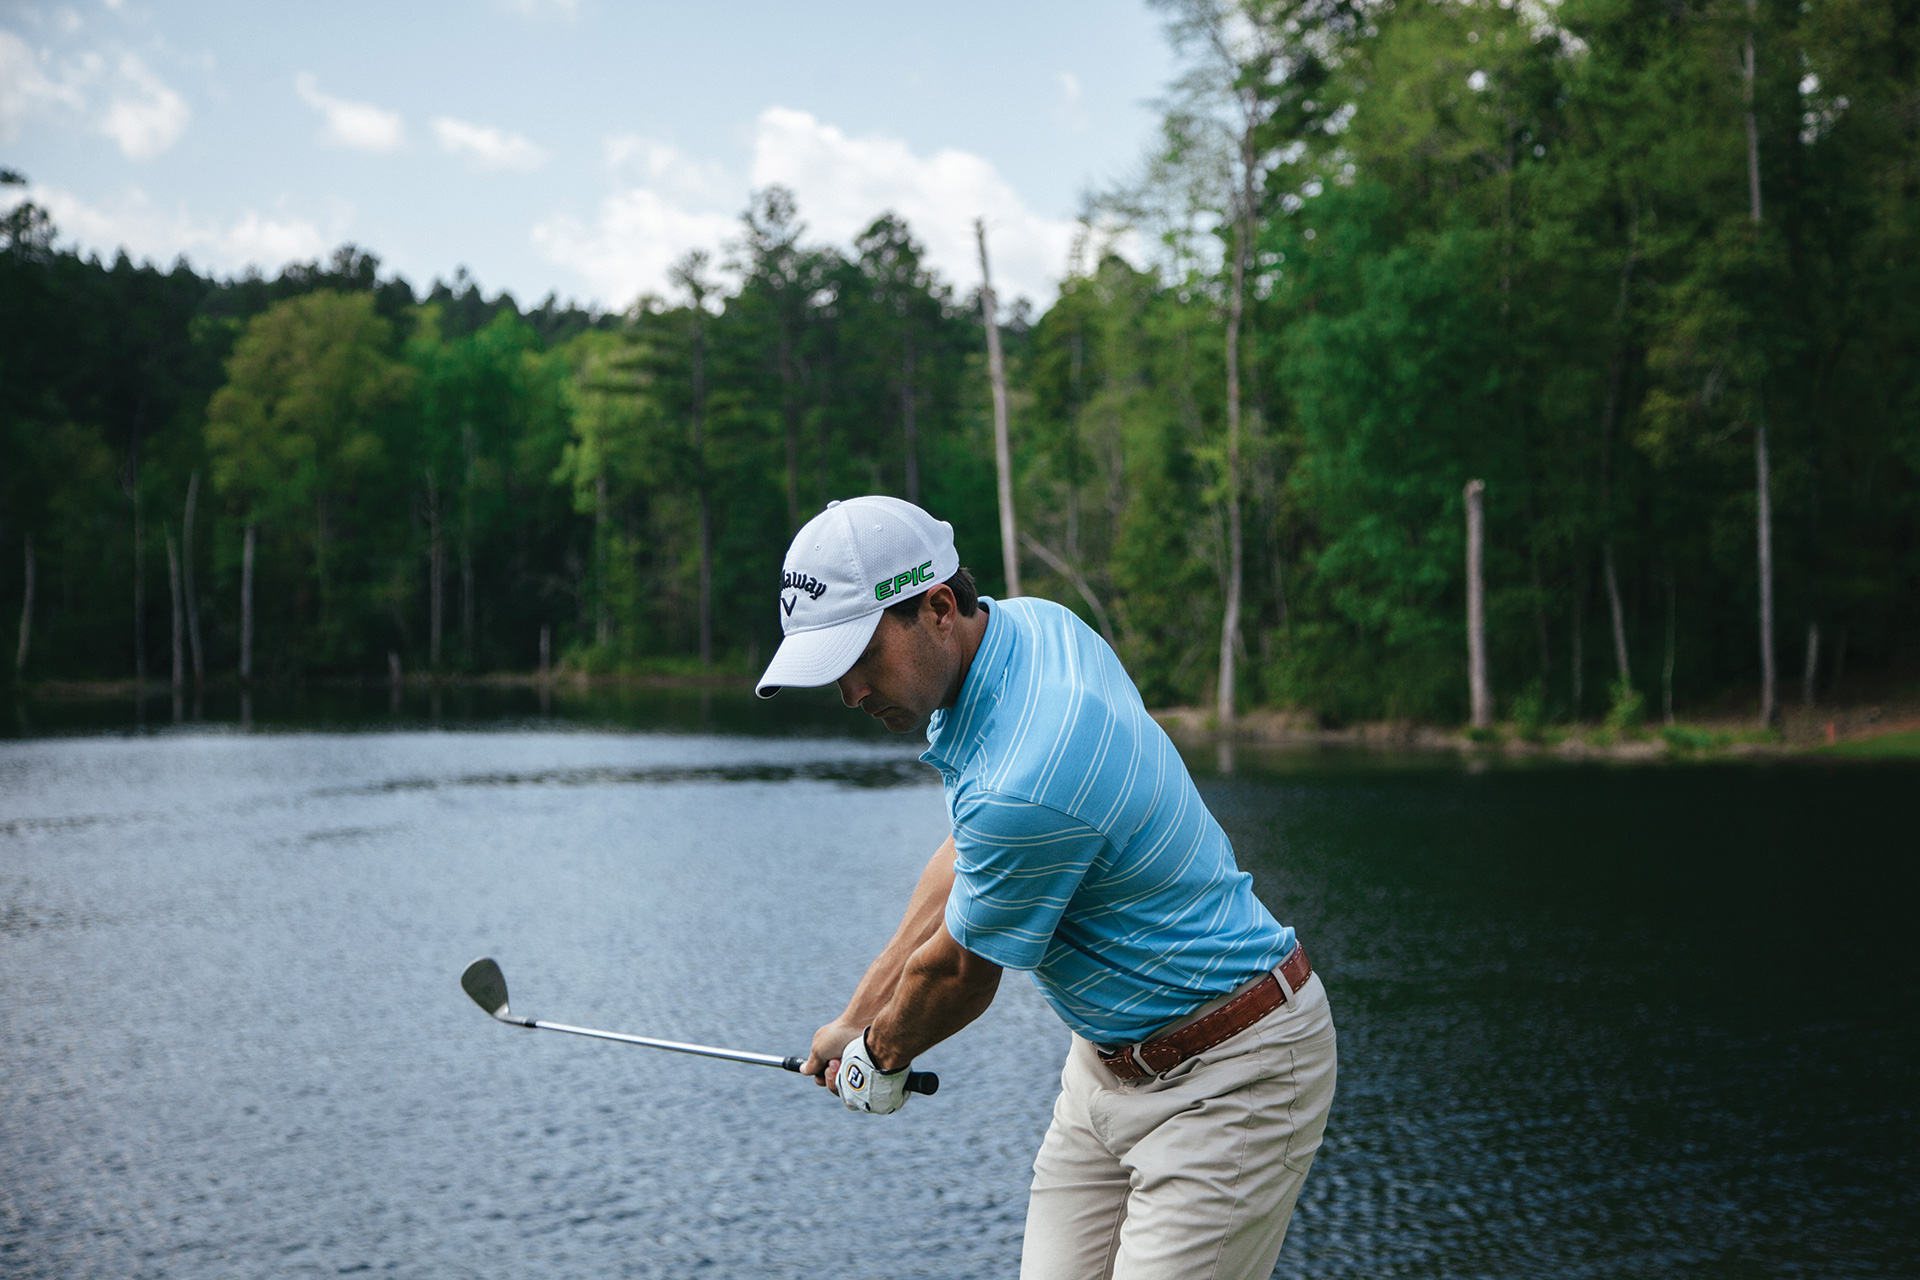 Golfer standing in front of a lake